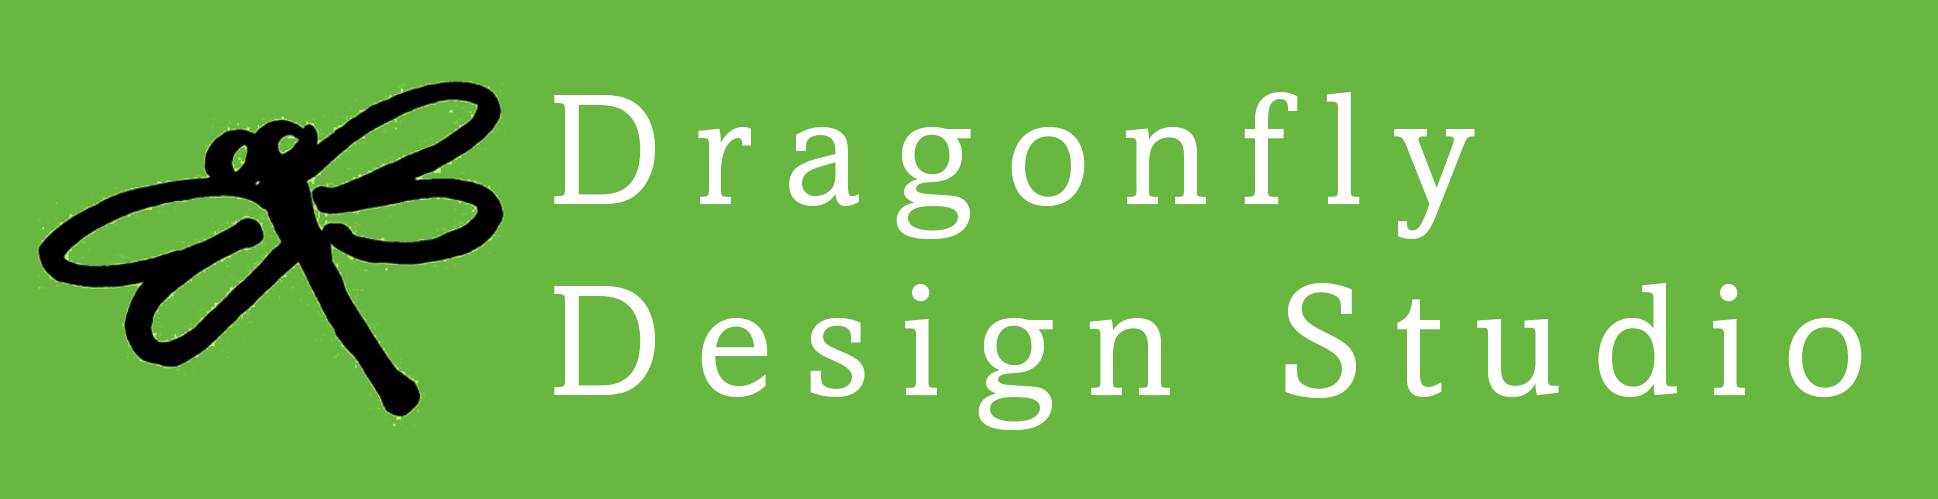 Dragonfly Design Studio